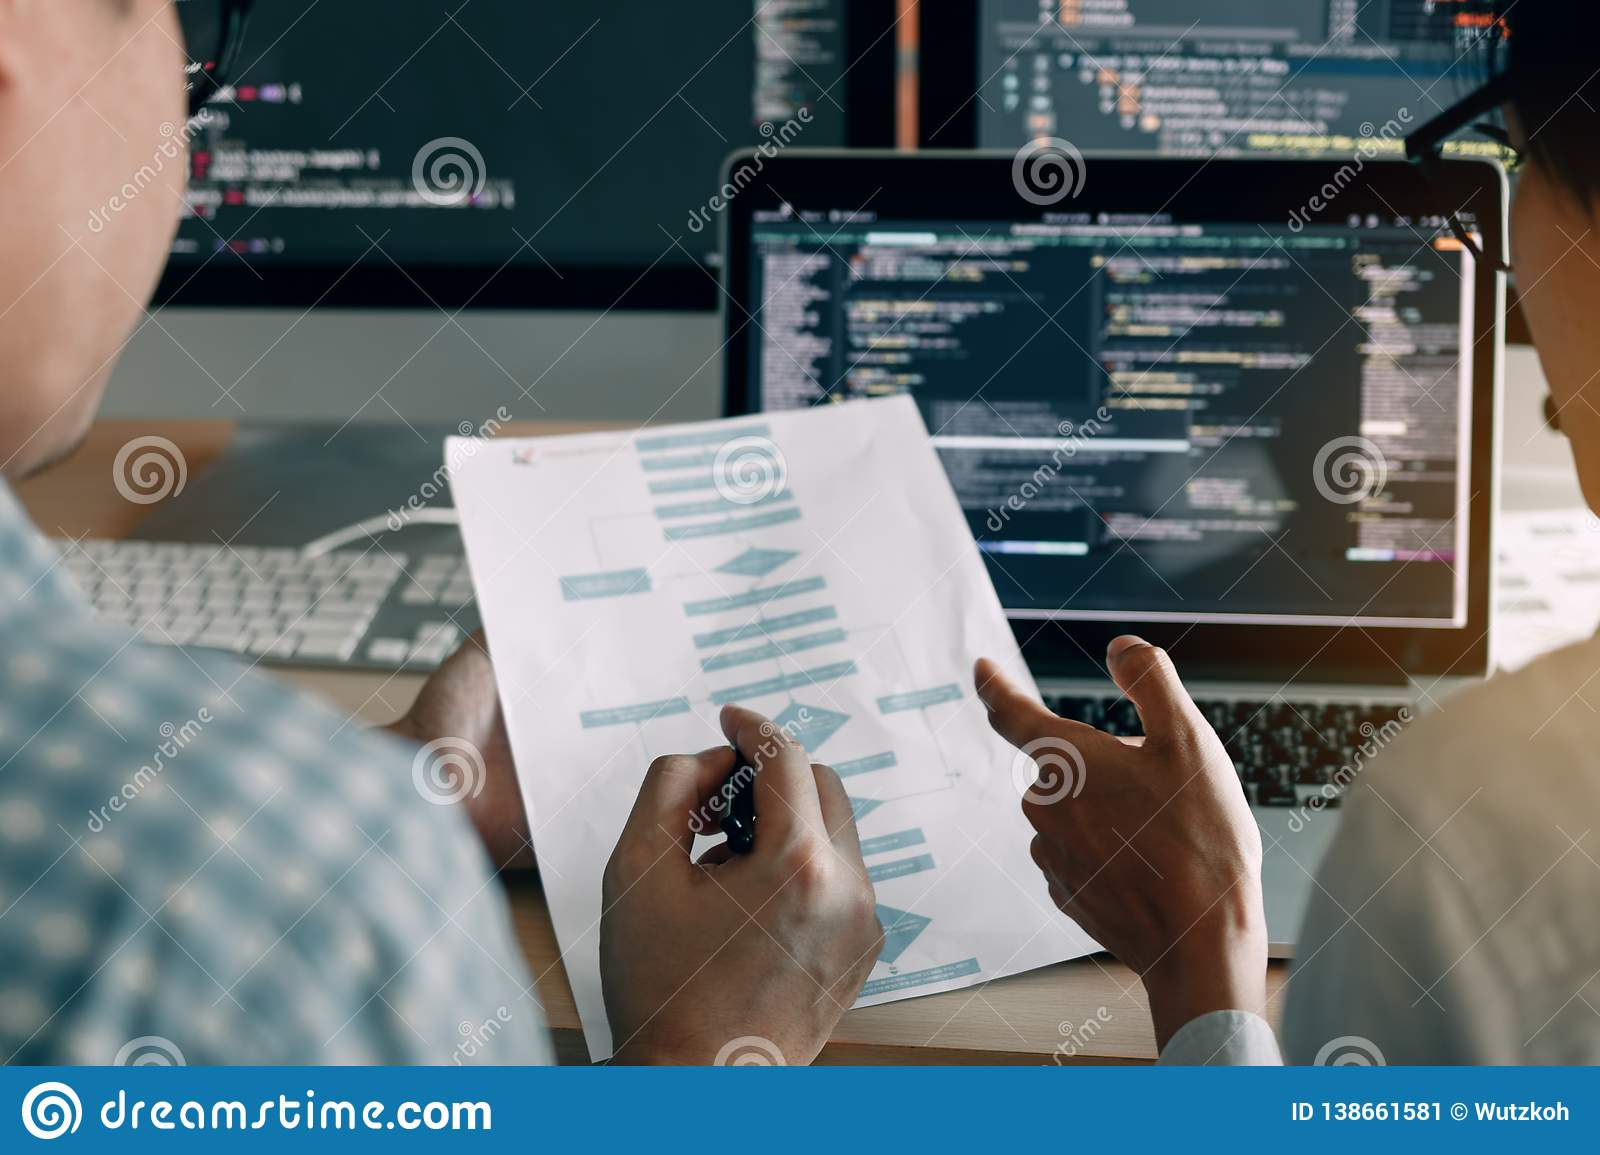 Developing programming and coding technologies working in a software engineers developing applications together in office